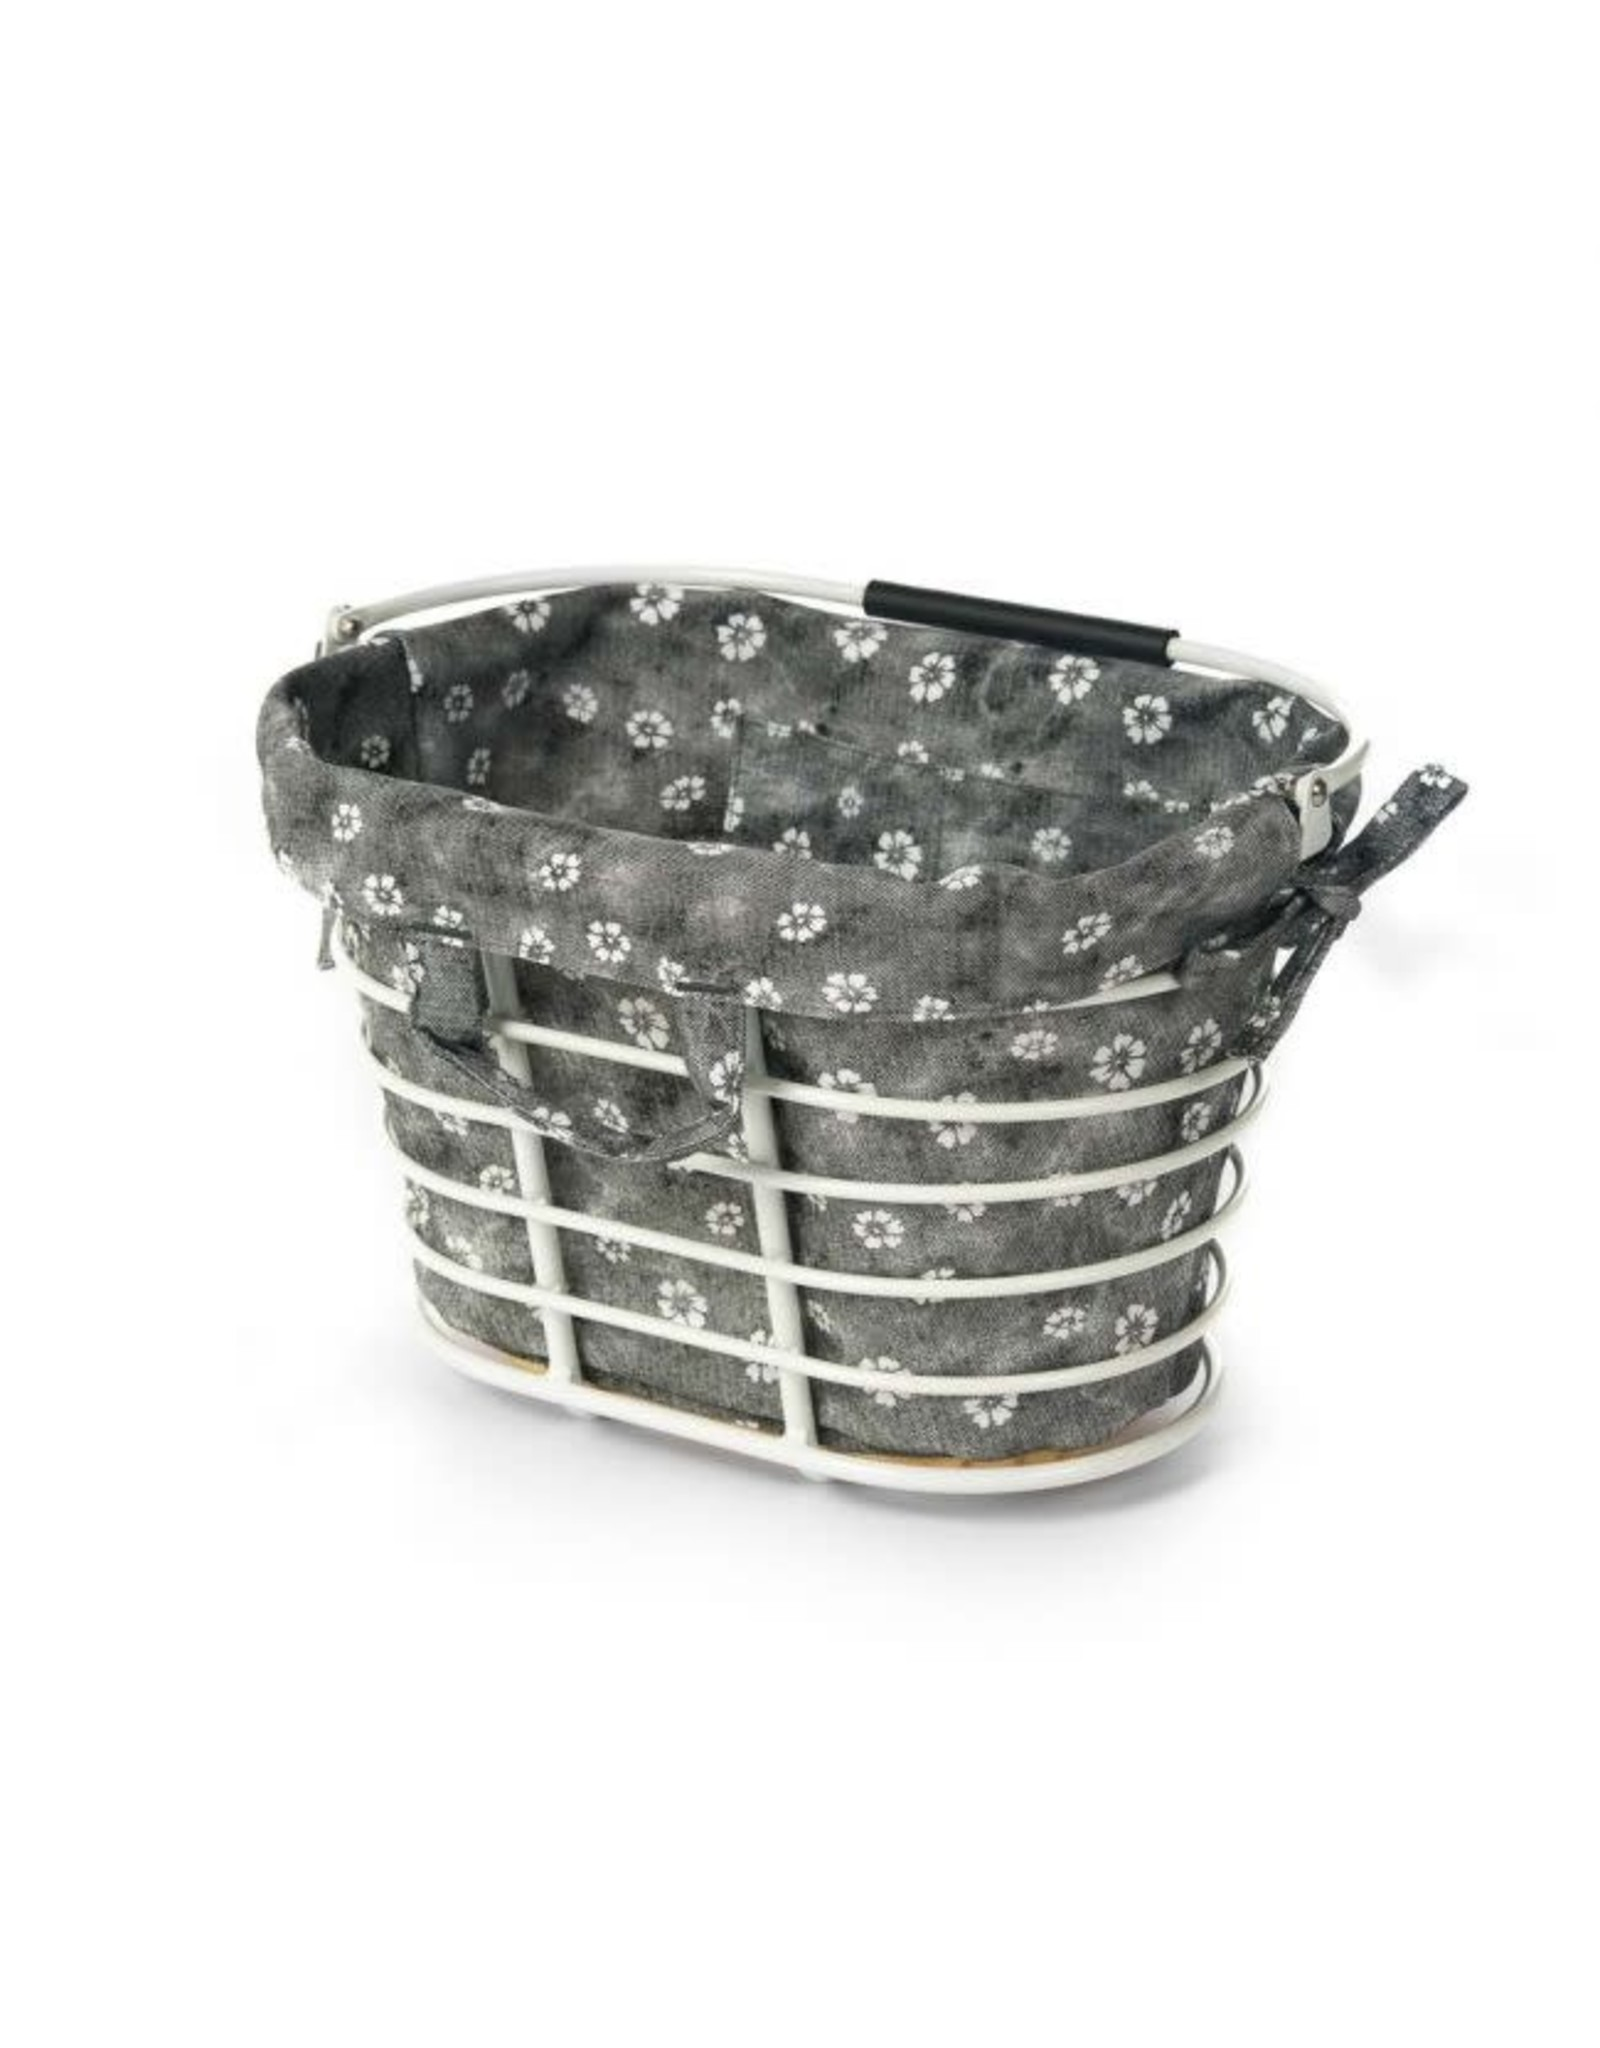 Pedego Electric Bikes Basket Liner for Aluminum Basket